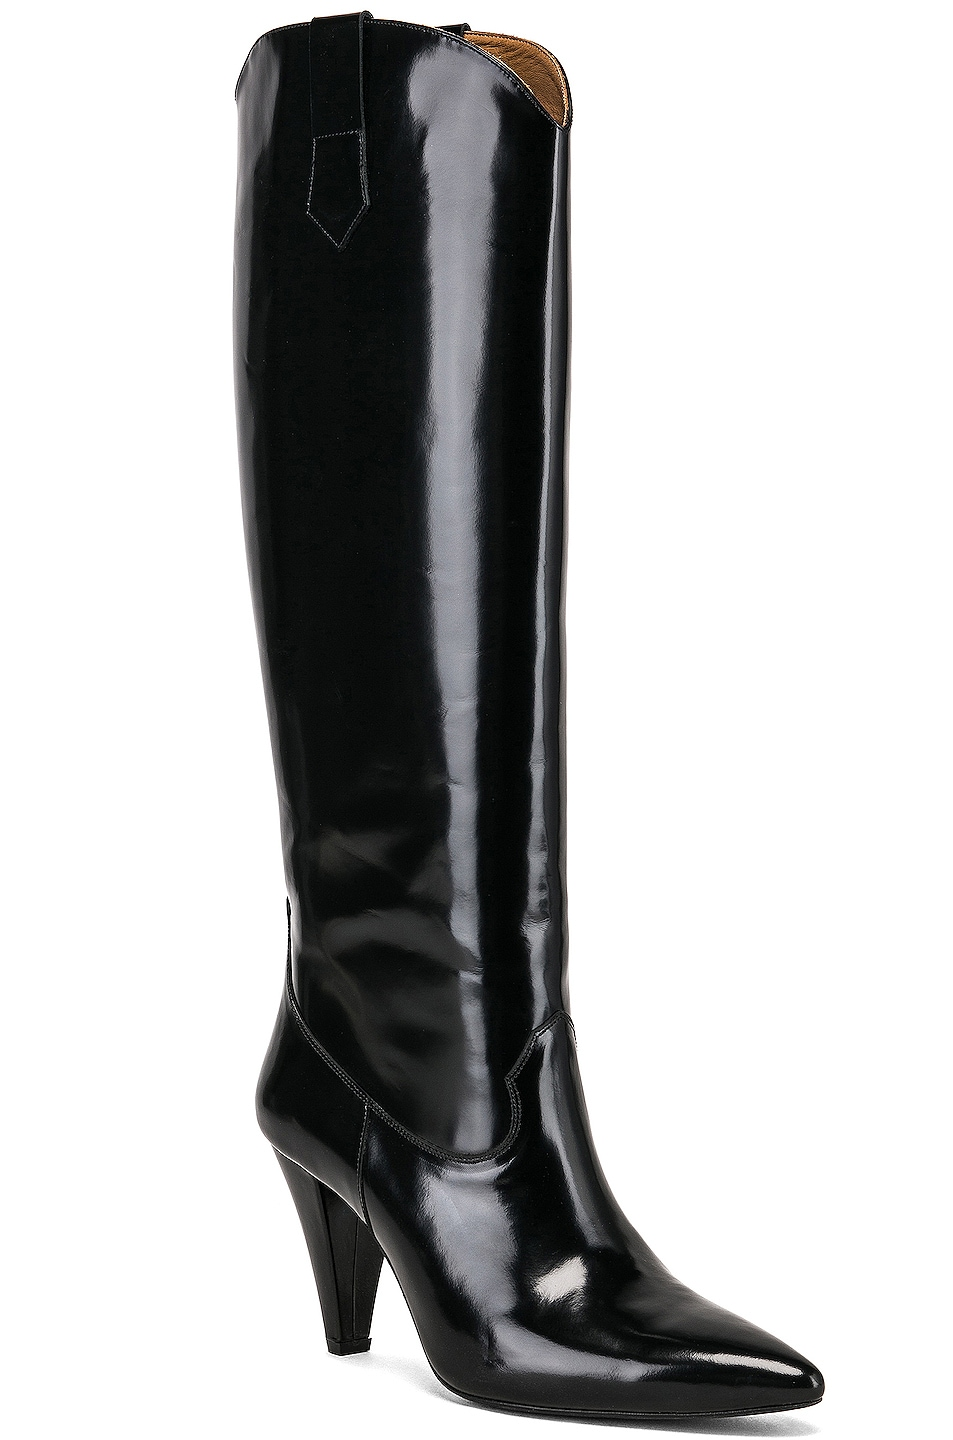 Image 2 of Zeynep Arcay Patent Leather Knee High Boots in Black